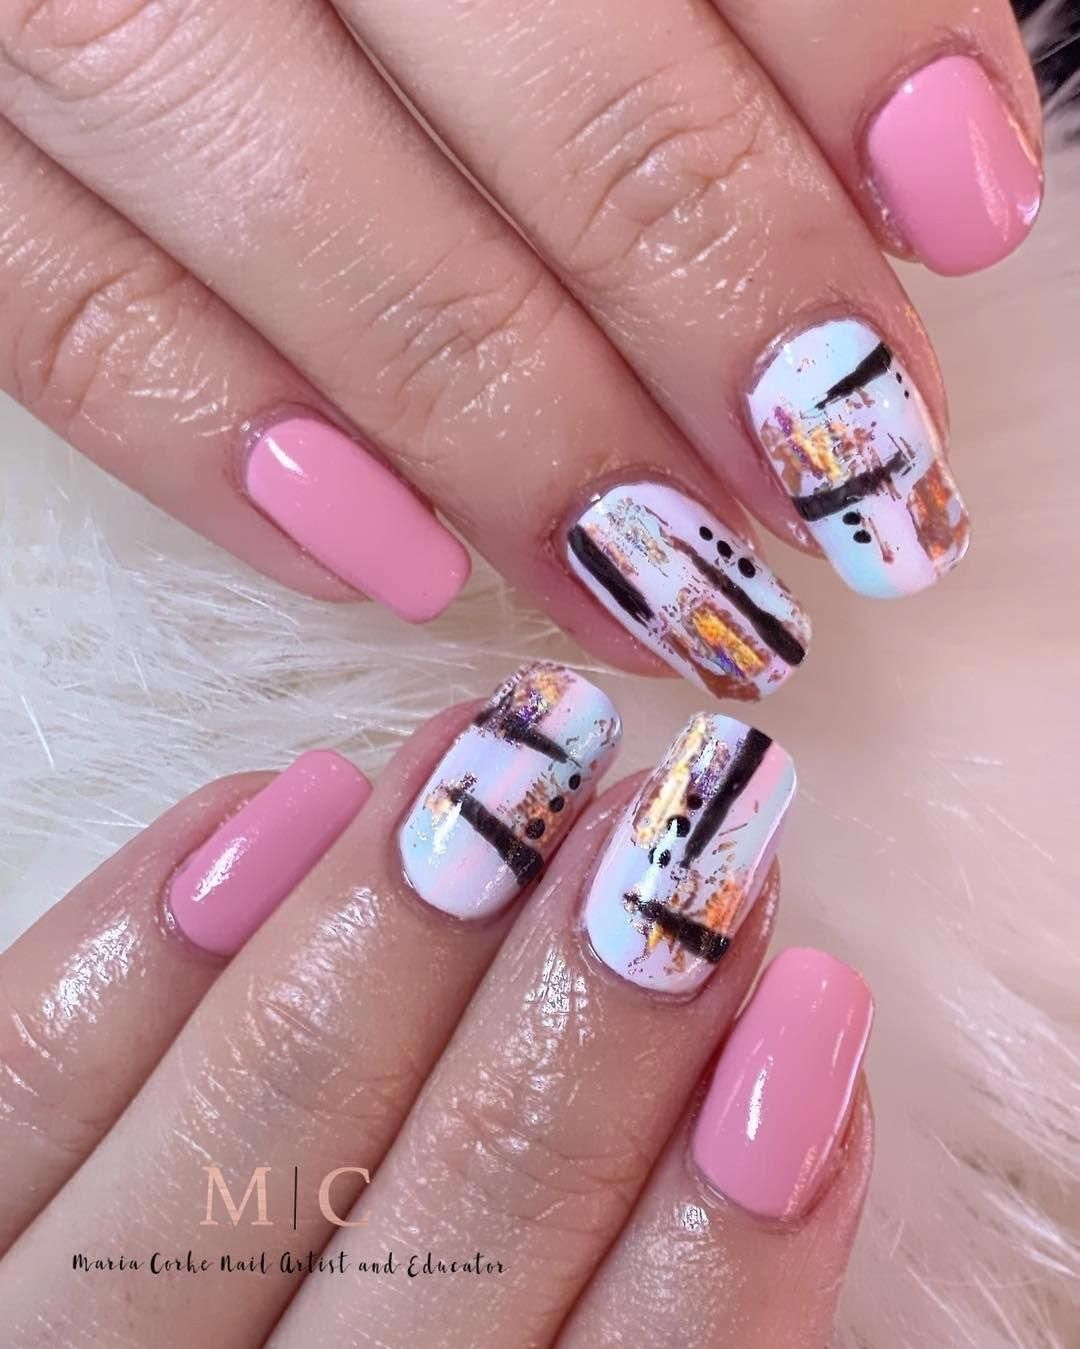 [New] The 10 Best Home Decor (with Pictures) - Pastel abstract on natural nails using @cndworld shellac @edgenails @the_gelbottle_inc #nails #nailart #naildesign #nailsofinstagram #nailinspo #scratchmagazine # showscratch #nailpro #nailsmagazine #stiletto #acrylicnails #jointherevolution #naildesigns #art #nails2inspire #handpainted #ArtworkNails